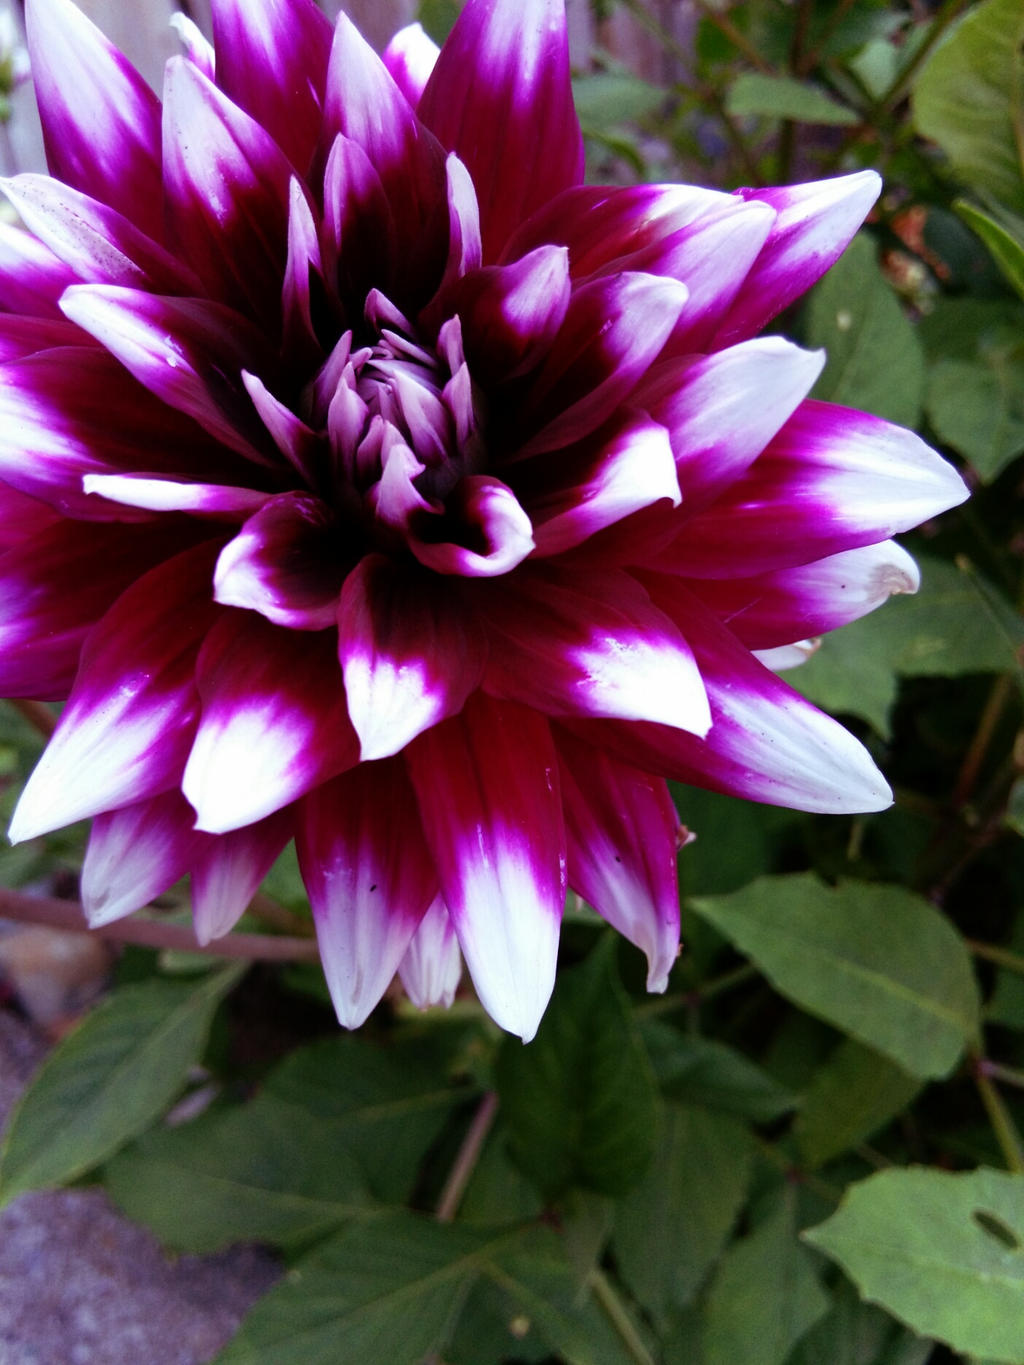 beautiful ombre purple and white flower by pizzasmiles on